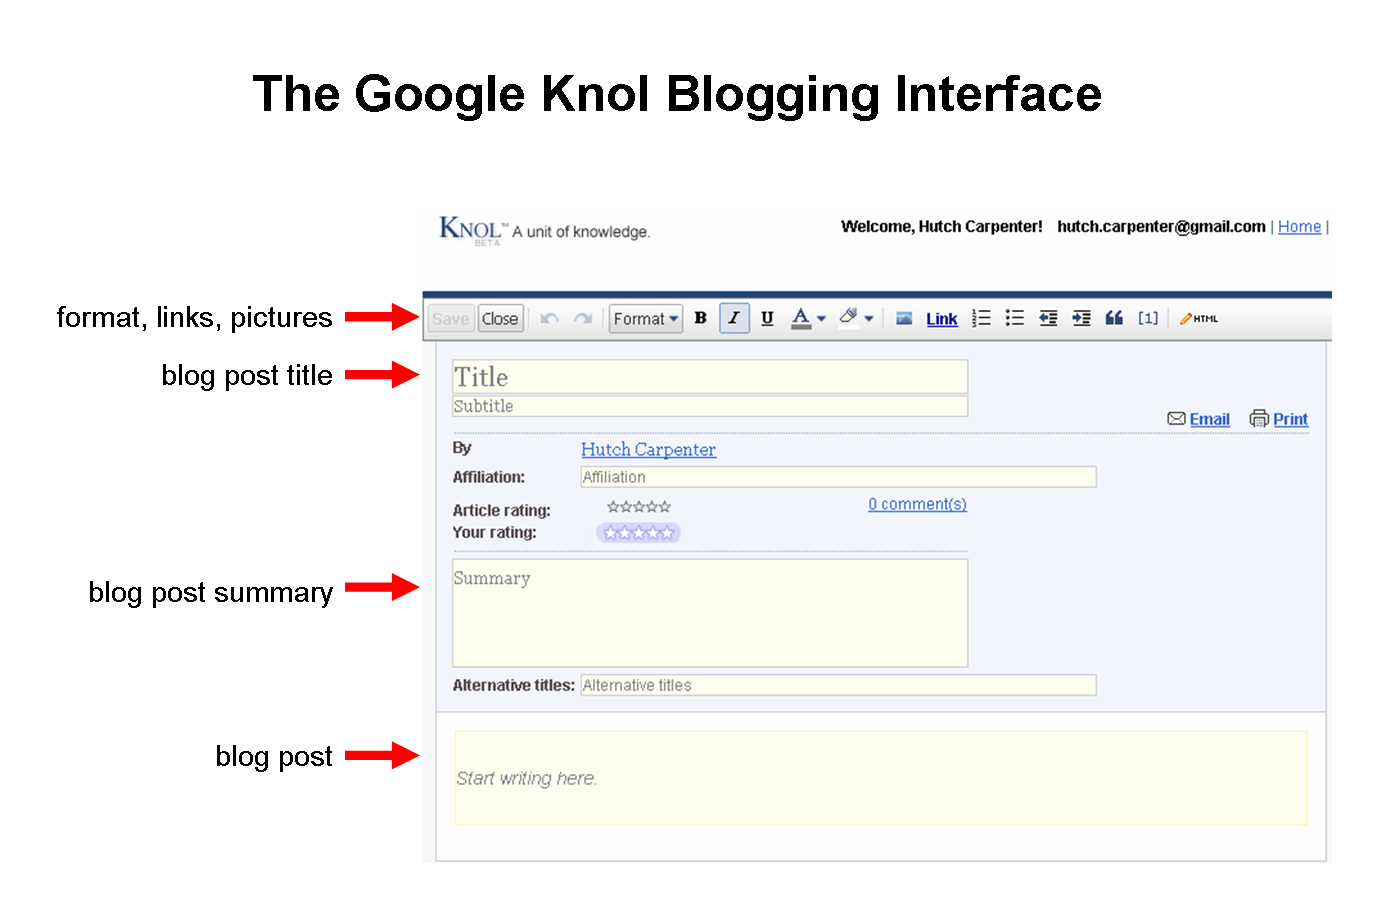 What do you think about Google Knol?